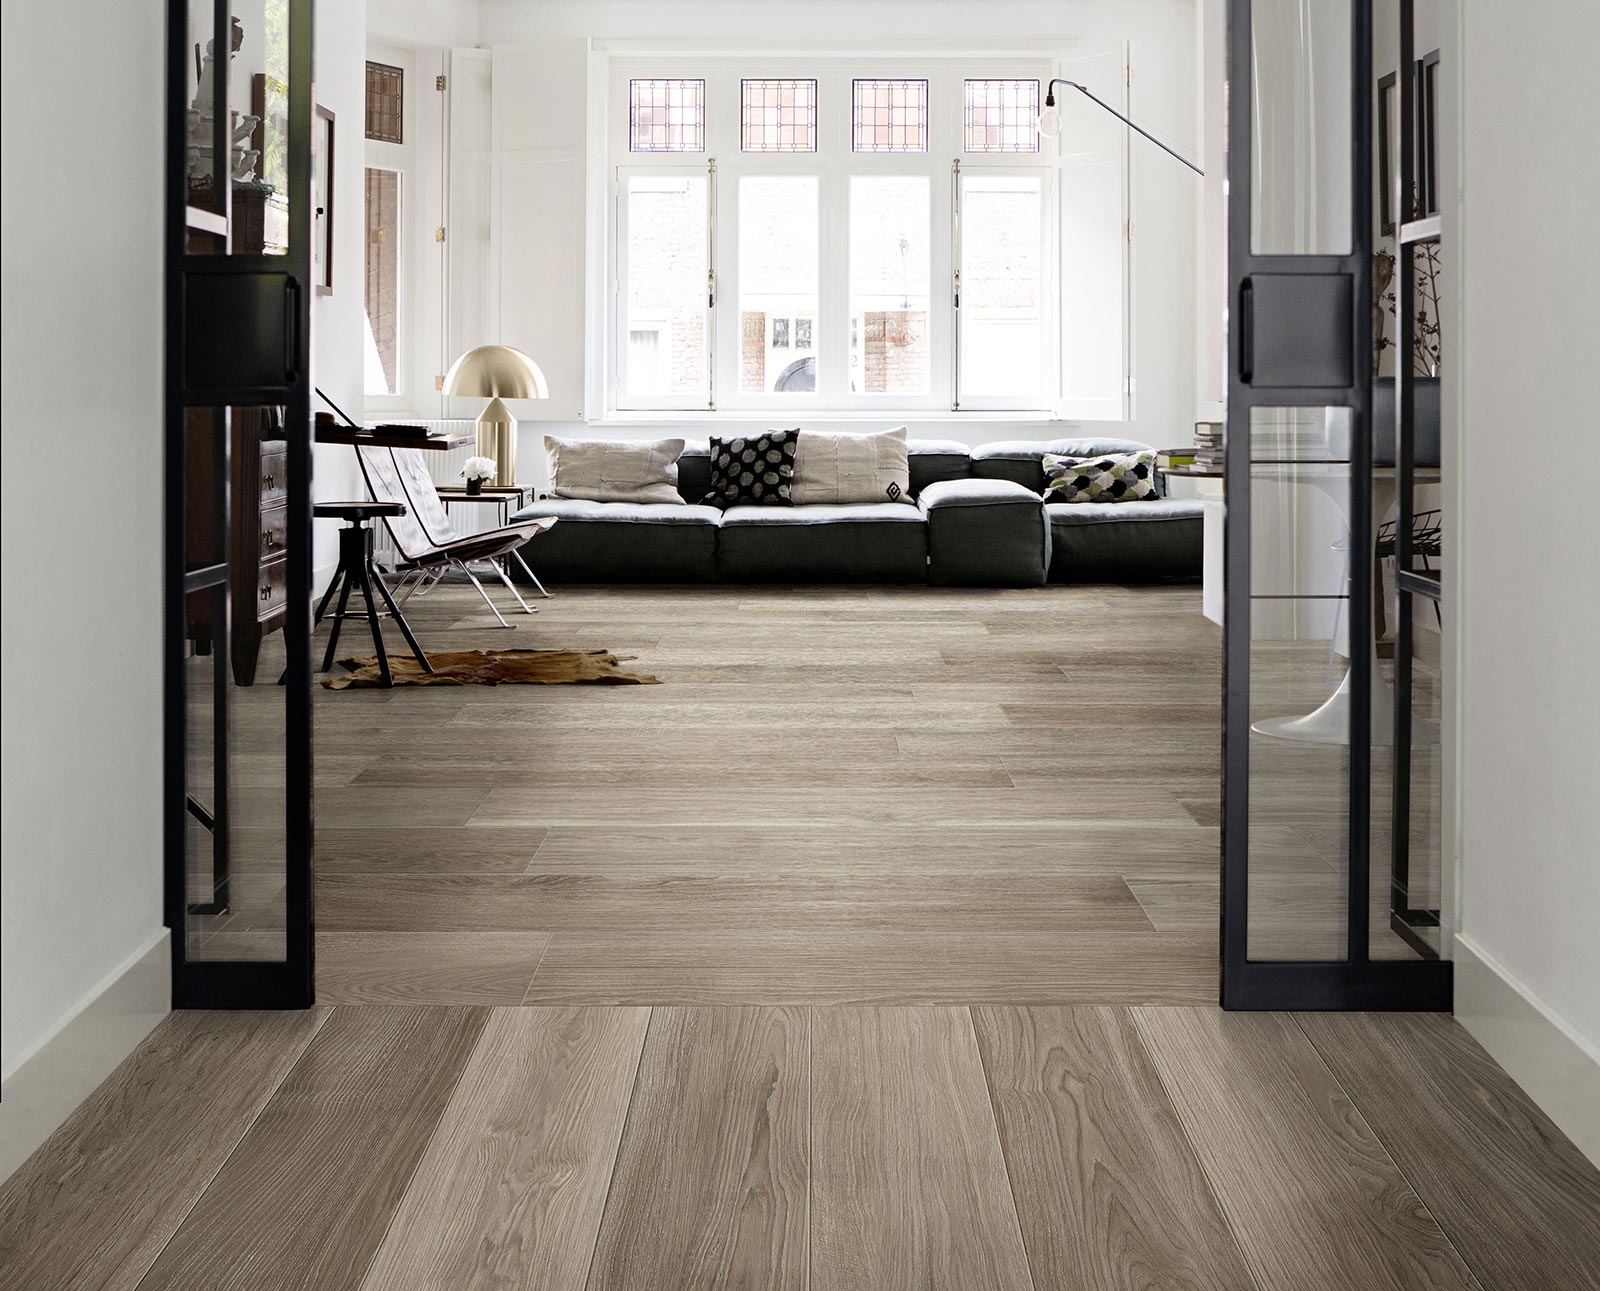 Treverkmust wood effect tiles marazzi for Pose carrelage sol imitation parquet